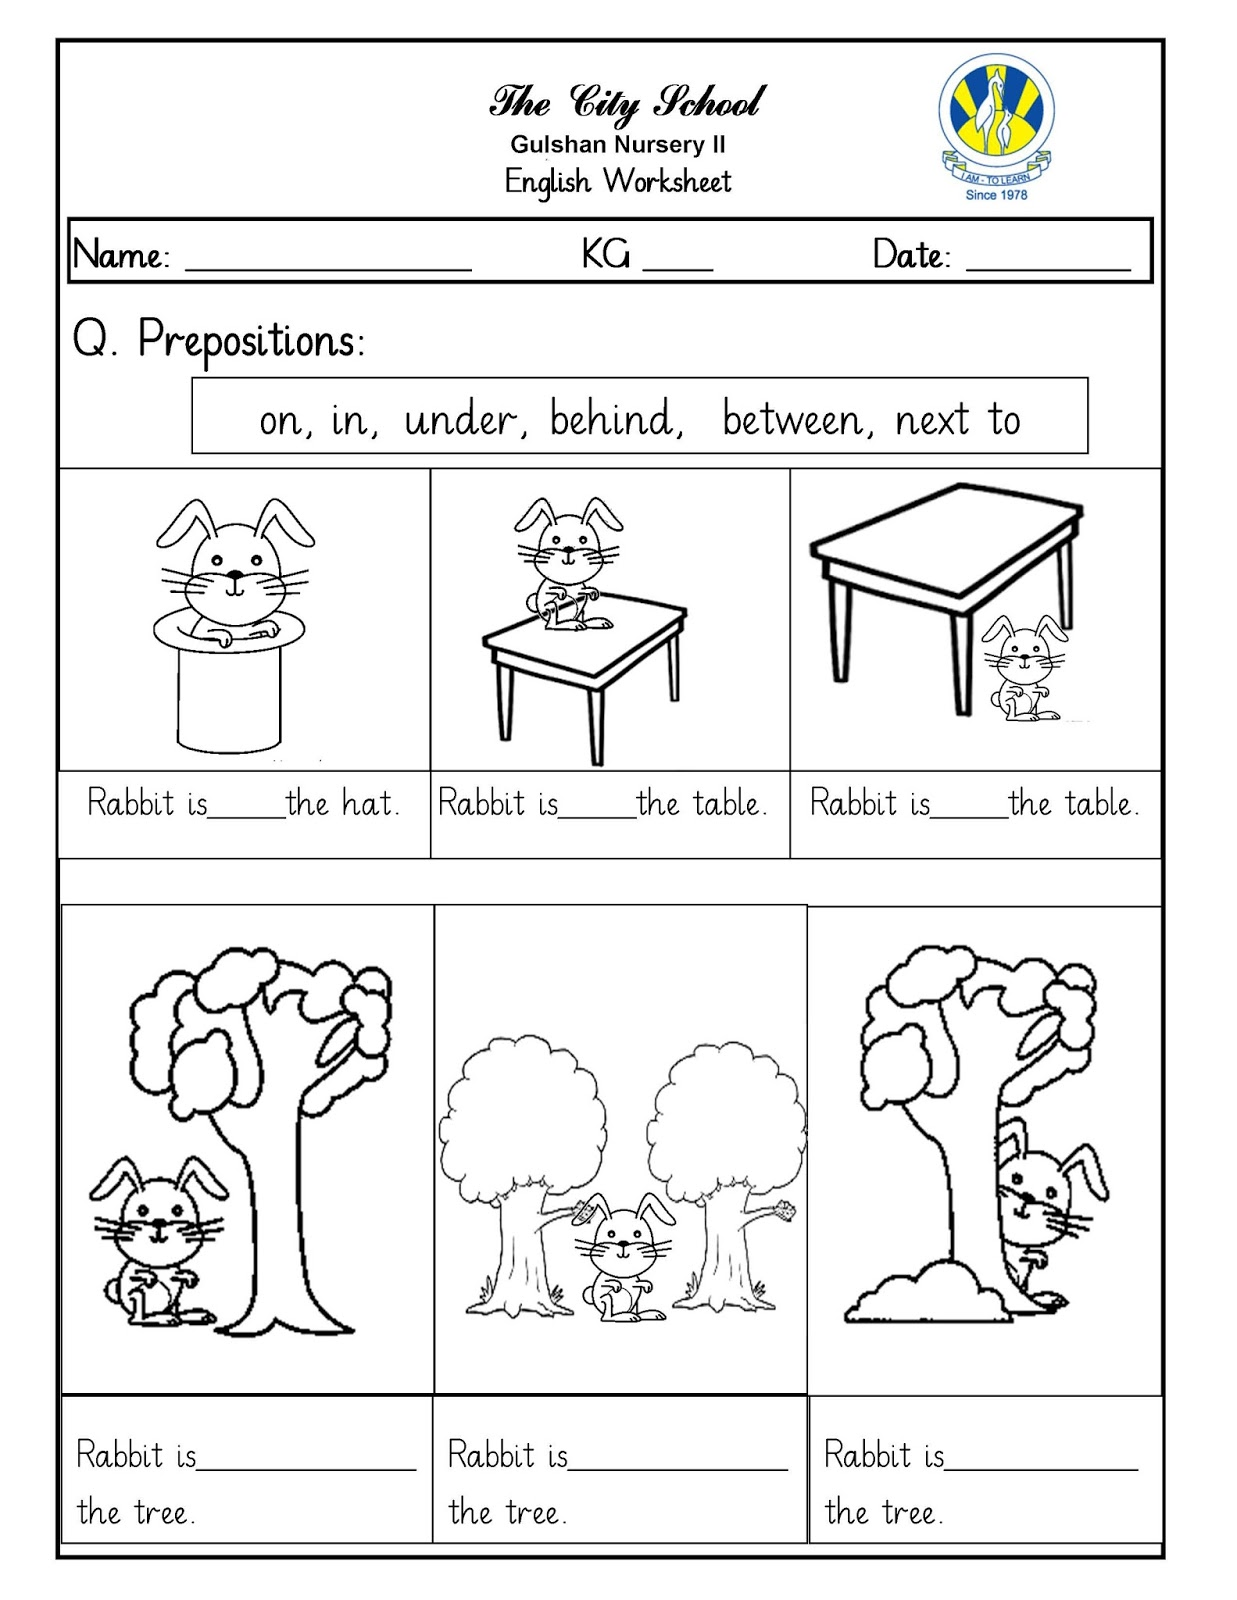 Sr Gulshan The City Nursery Ii English And Kuwa Worksheets